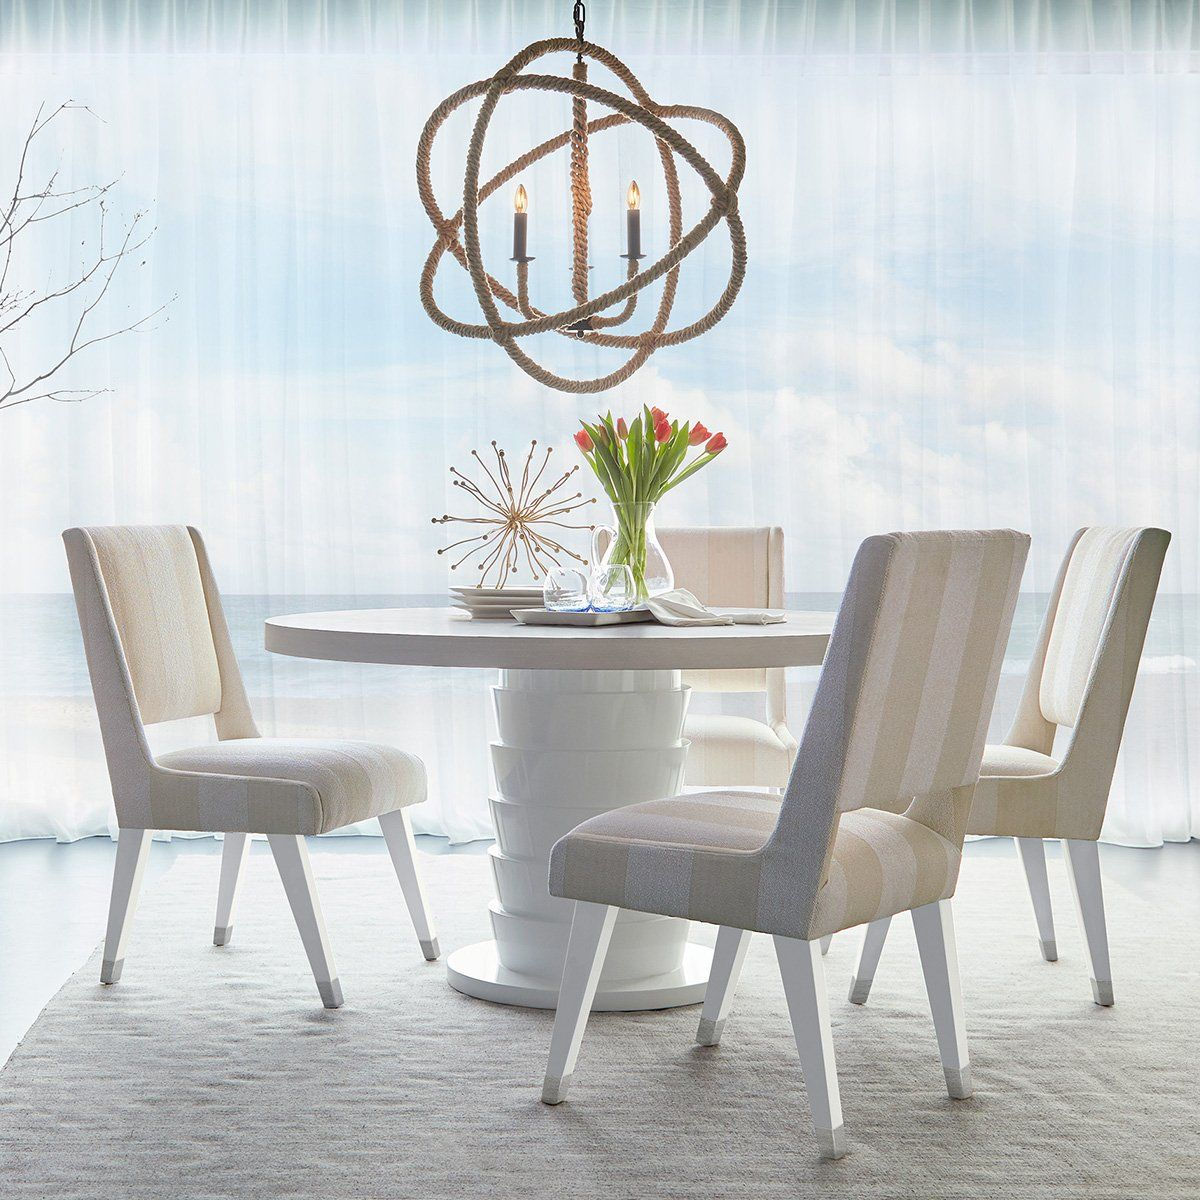 36+ Dining room sets miami Best Choice